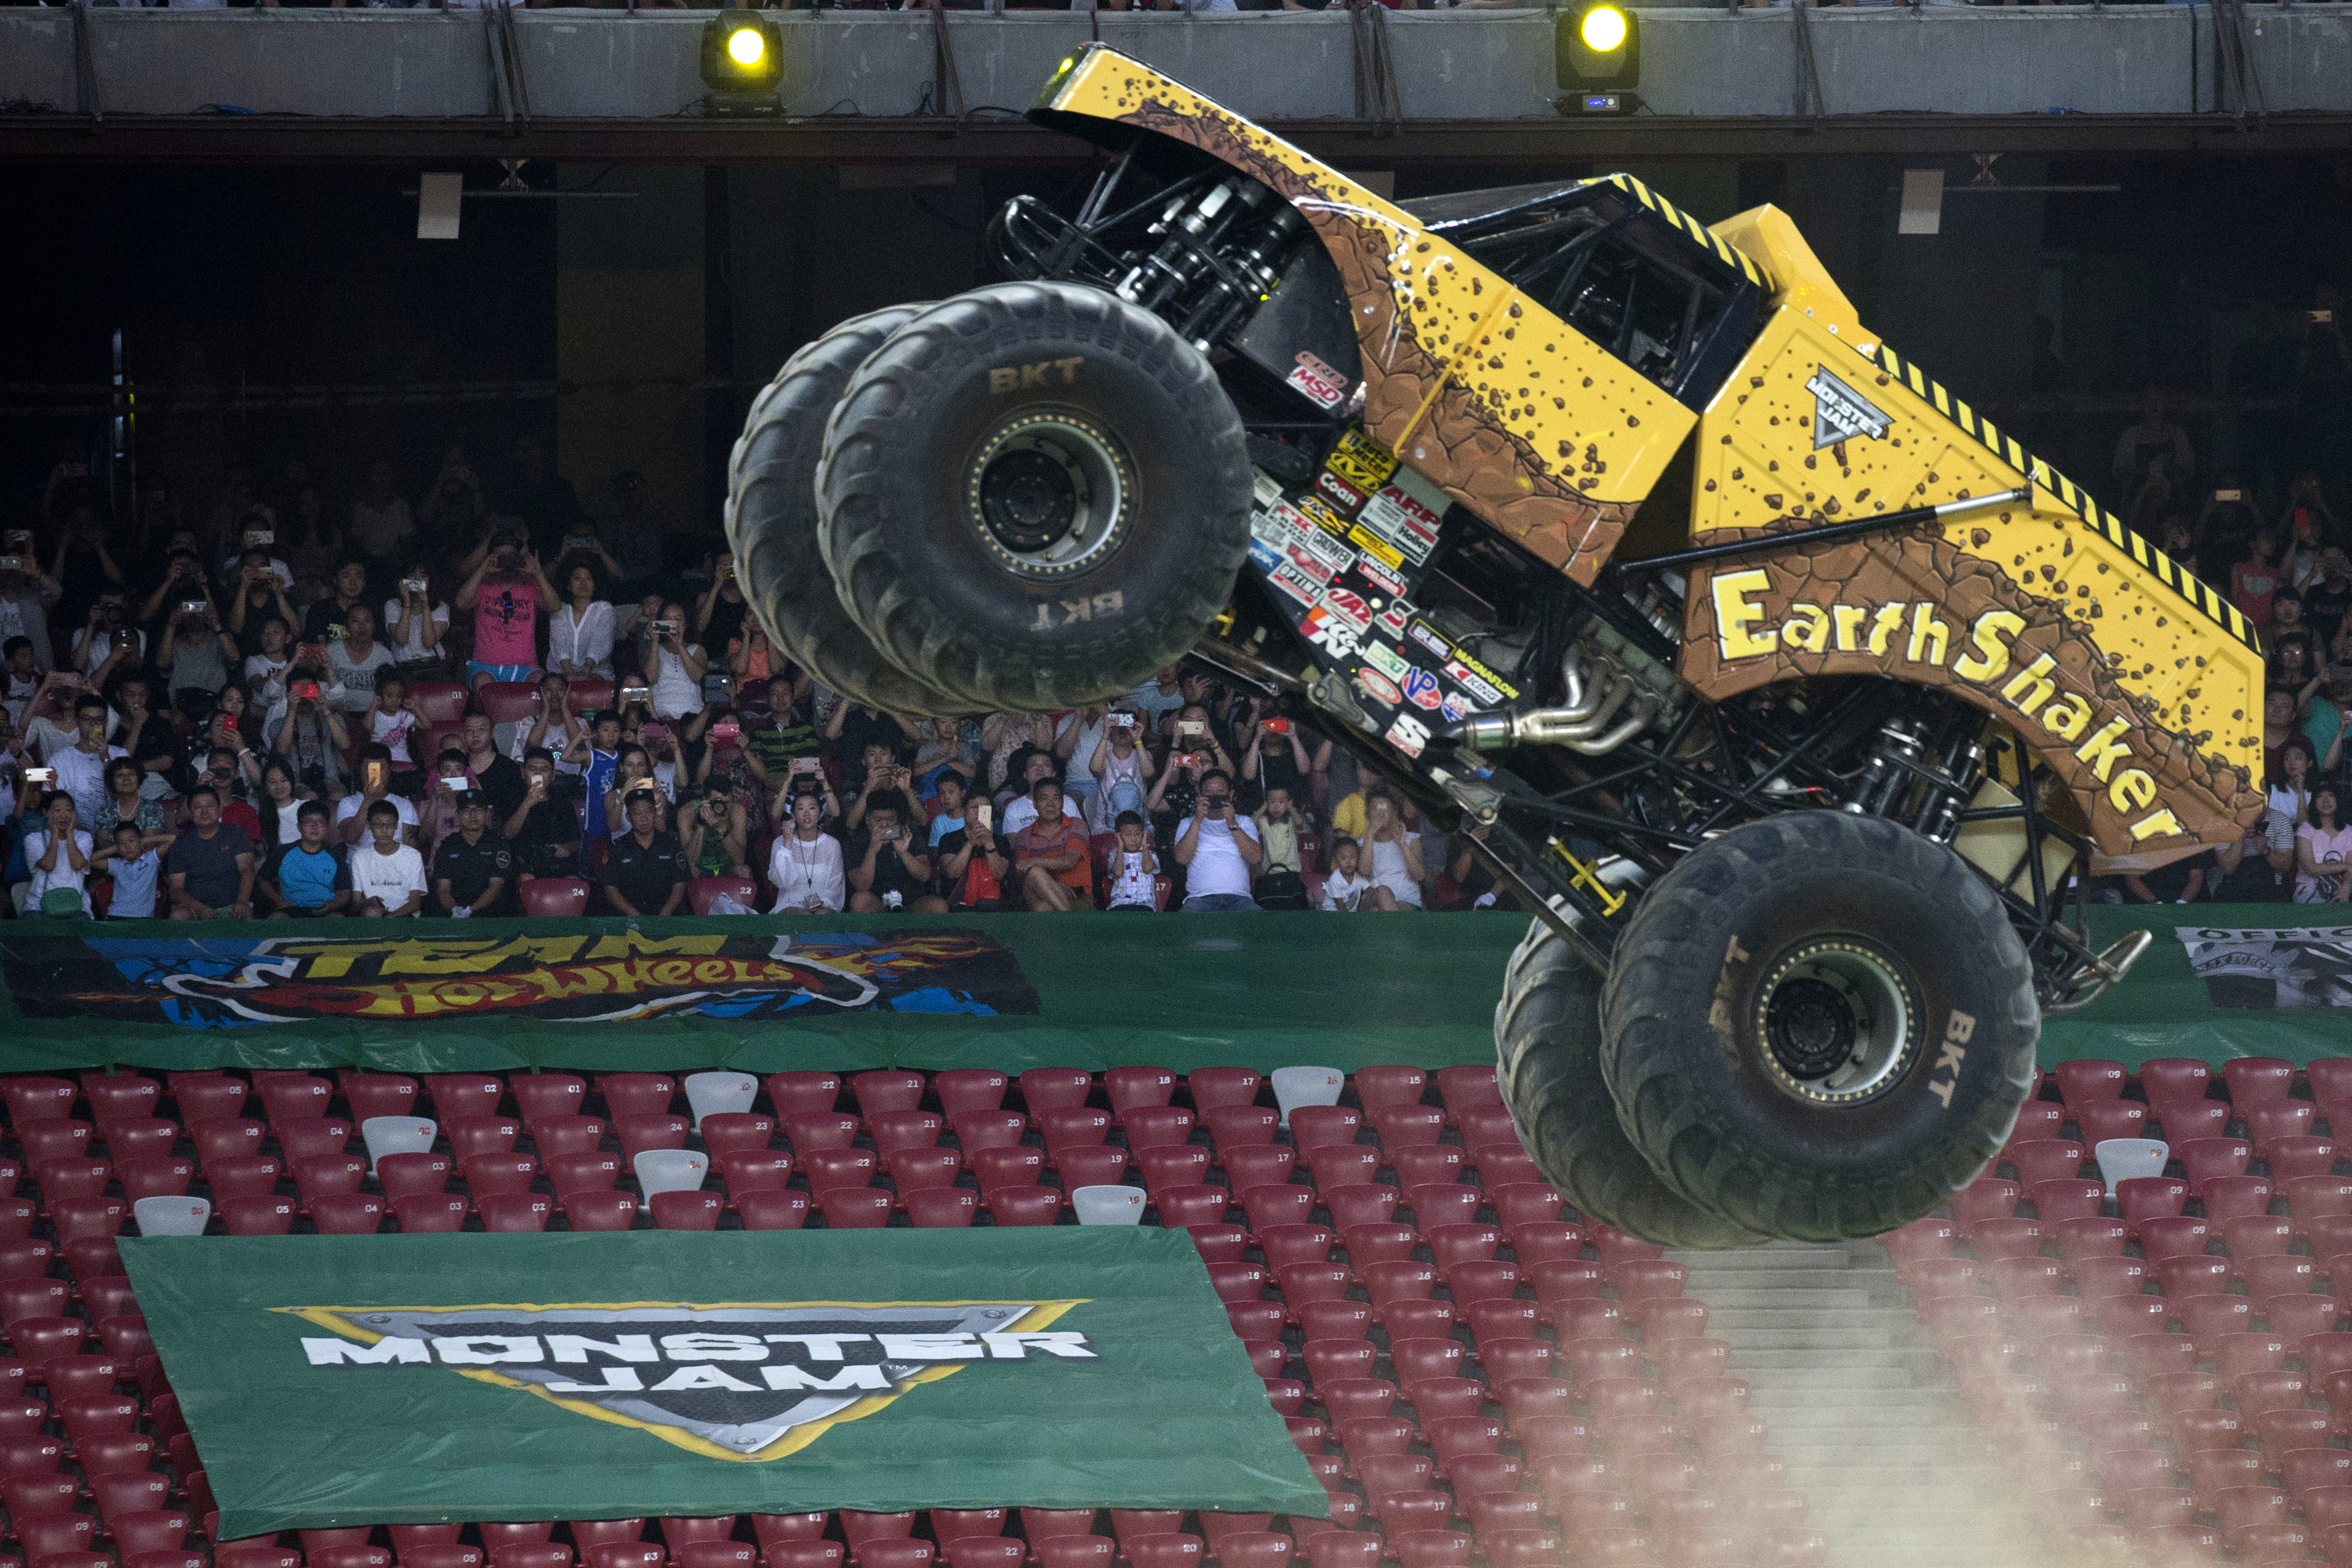 Monster trucks for everyone: Like gymnastics, but with more